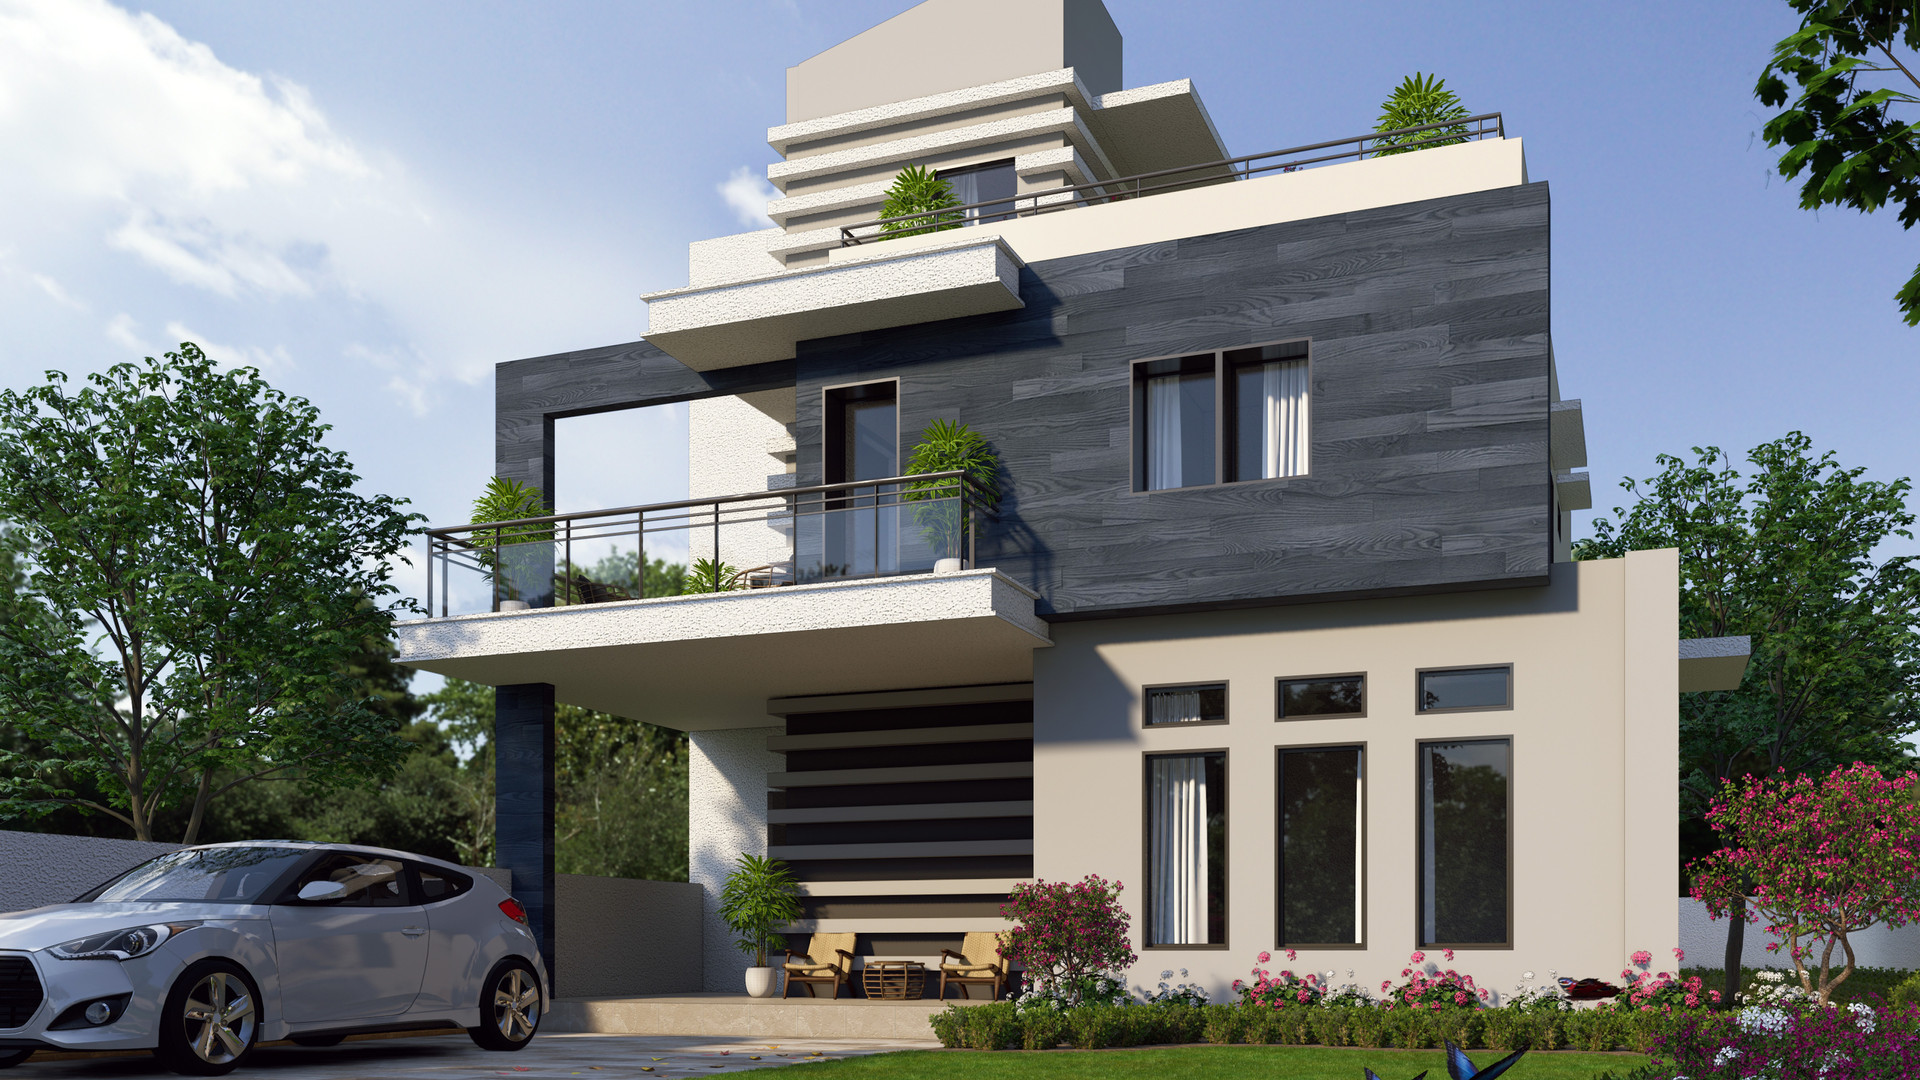 Two-Storey Residential with Roof Deck